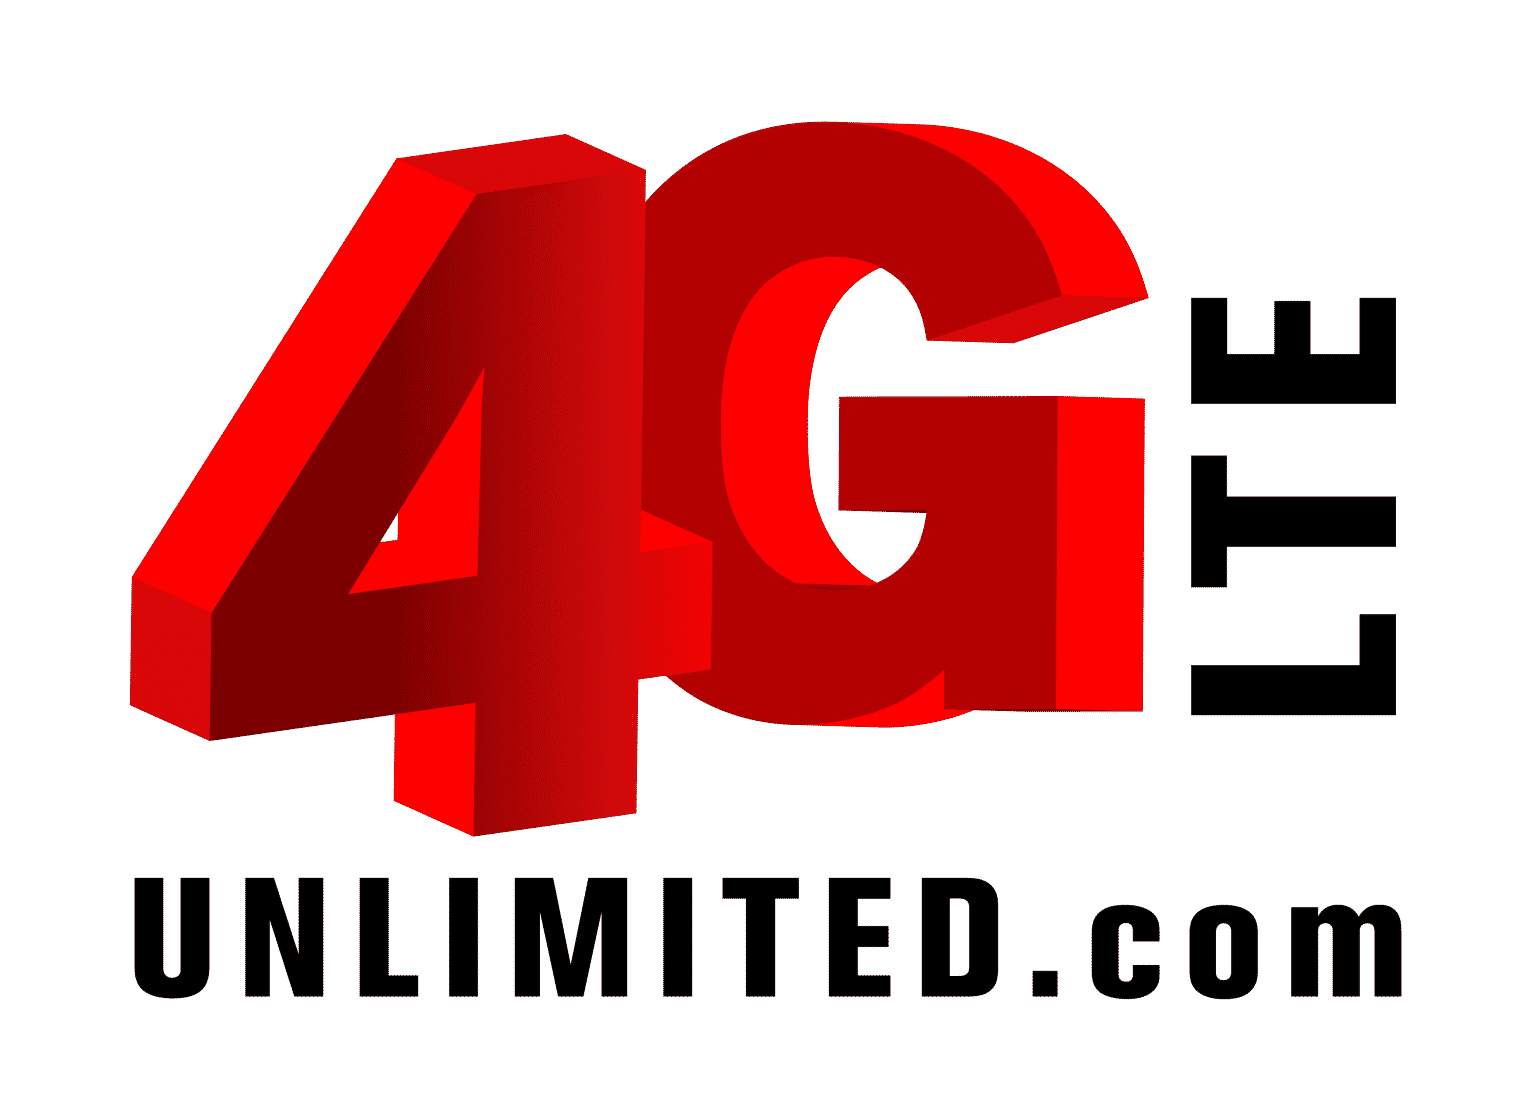 4g Lte Unlimited